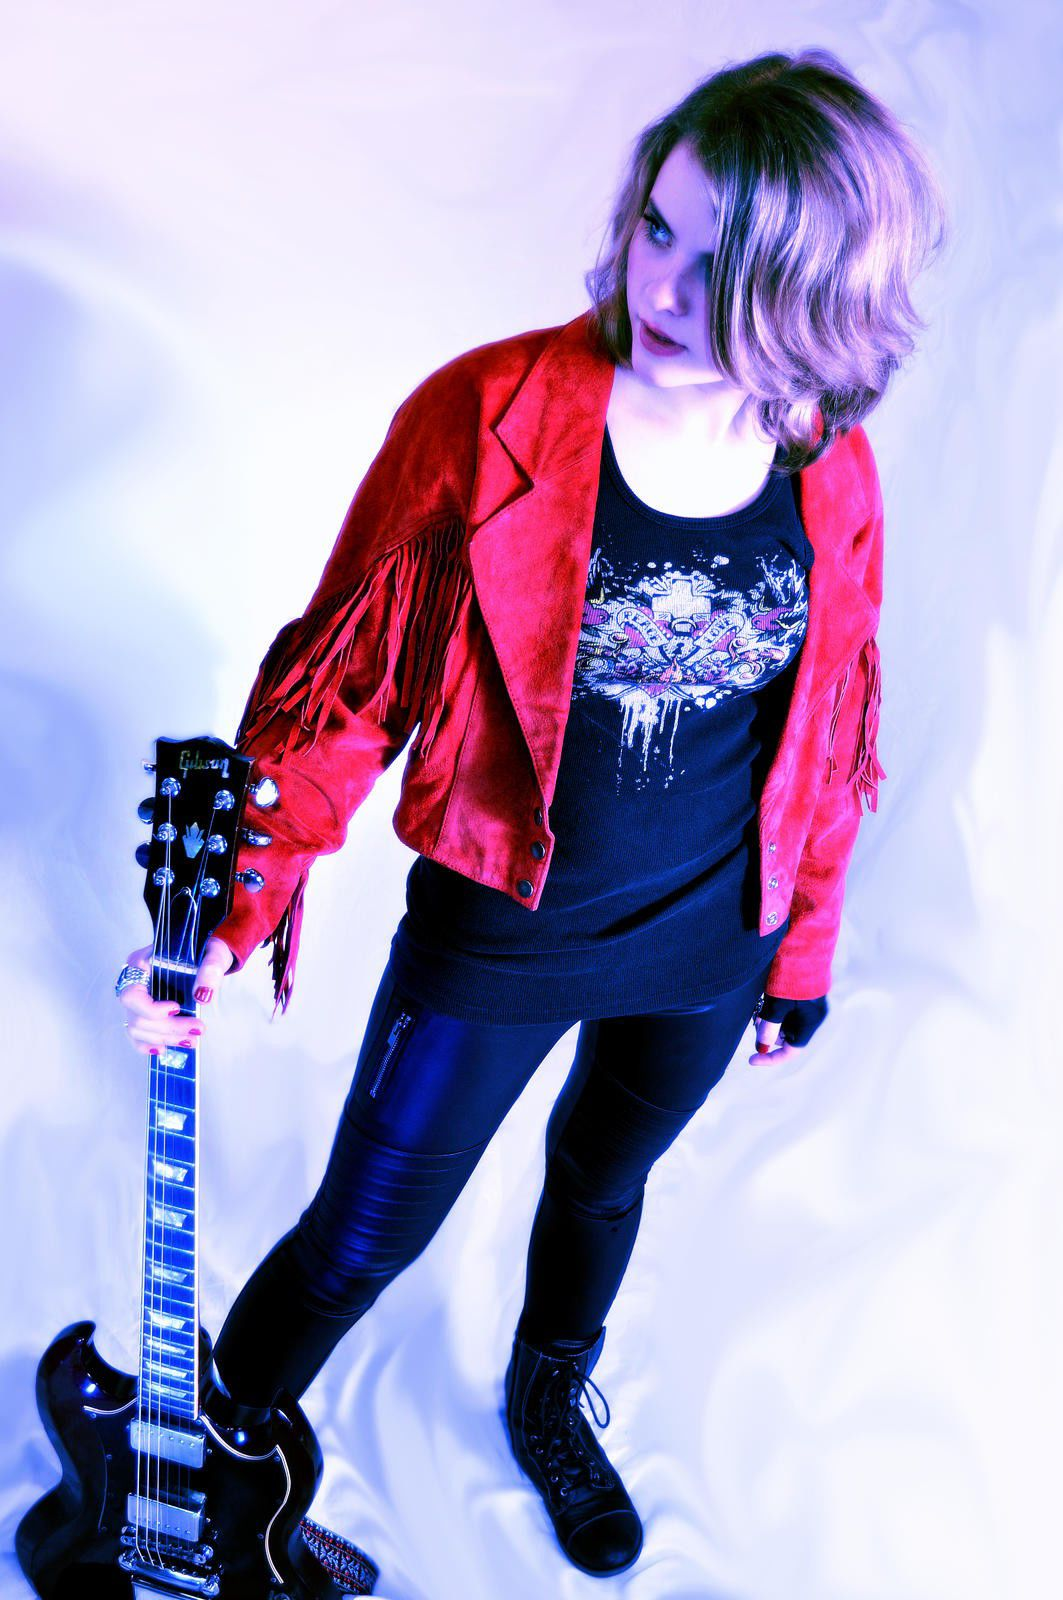 Summer begins: A young songwriter finds her feet